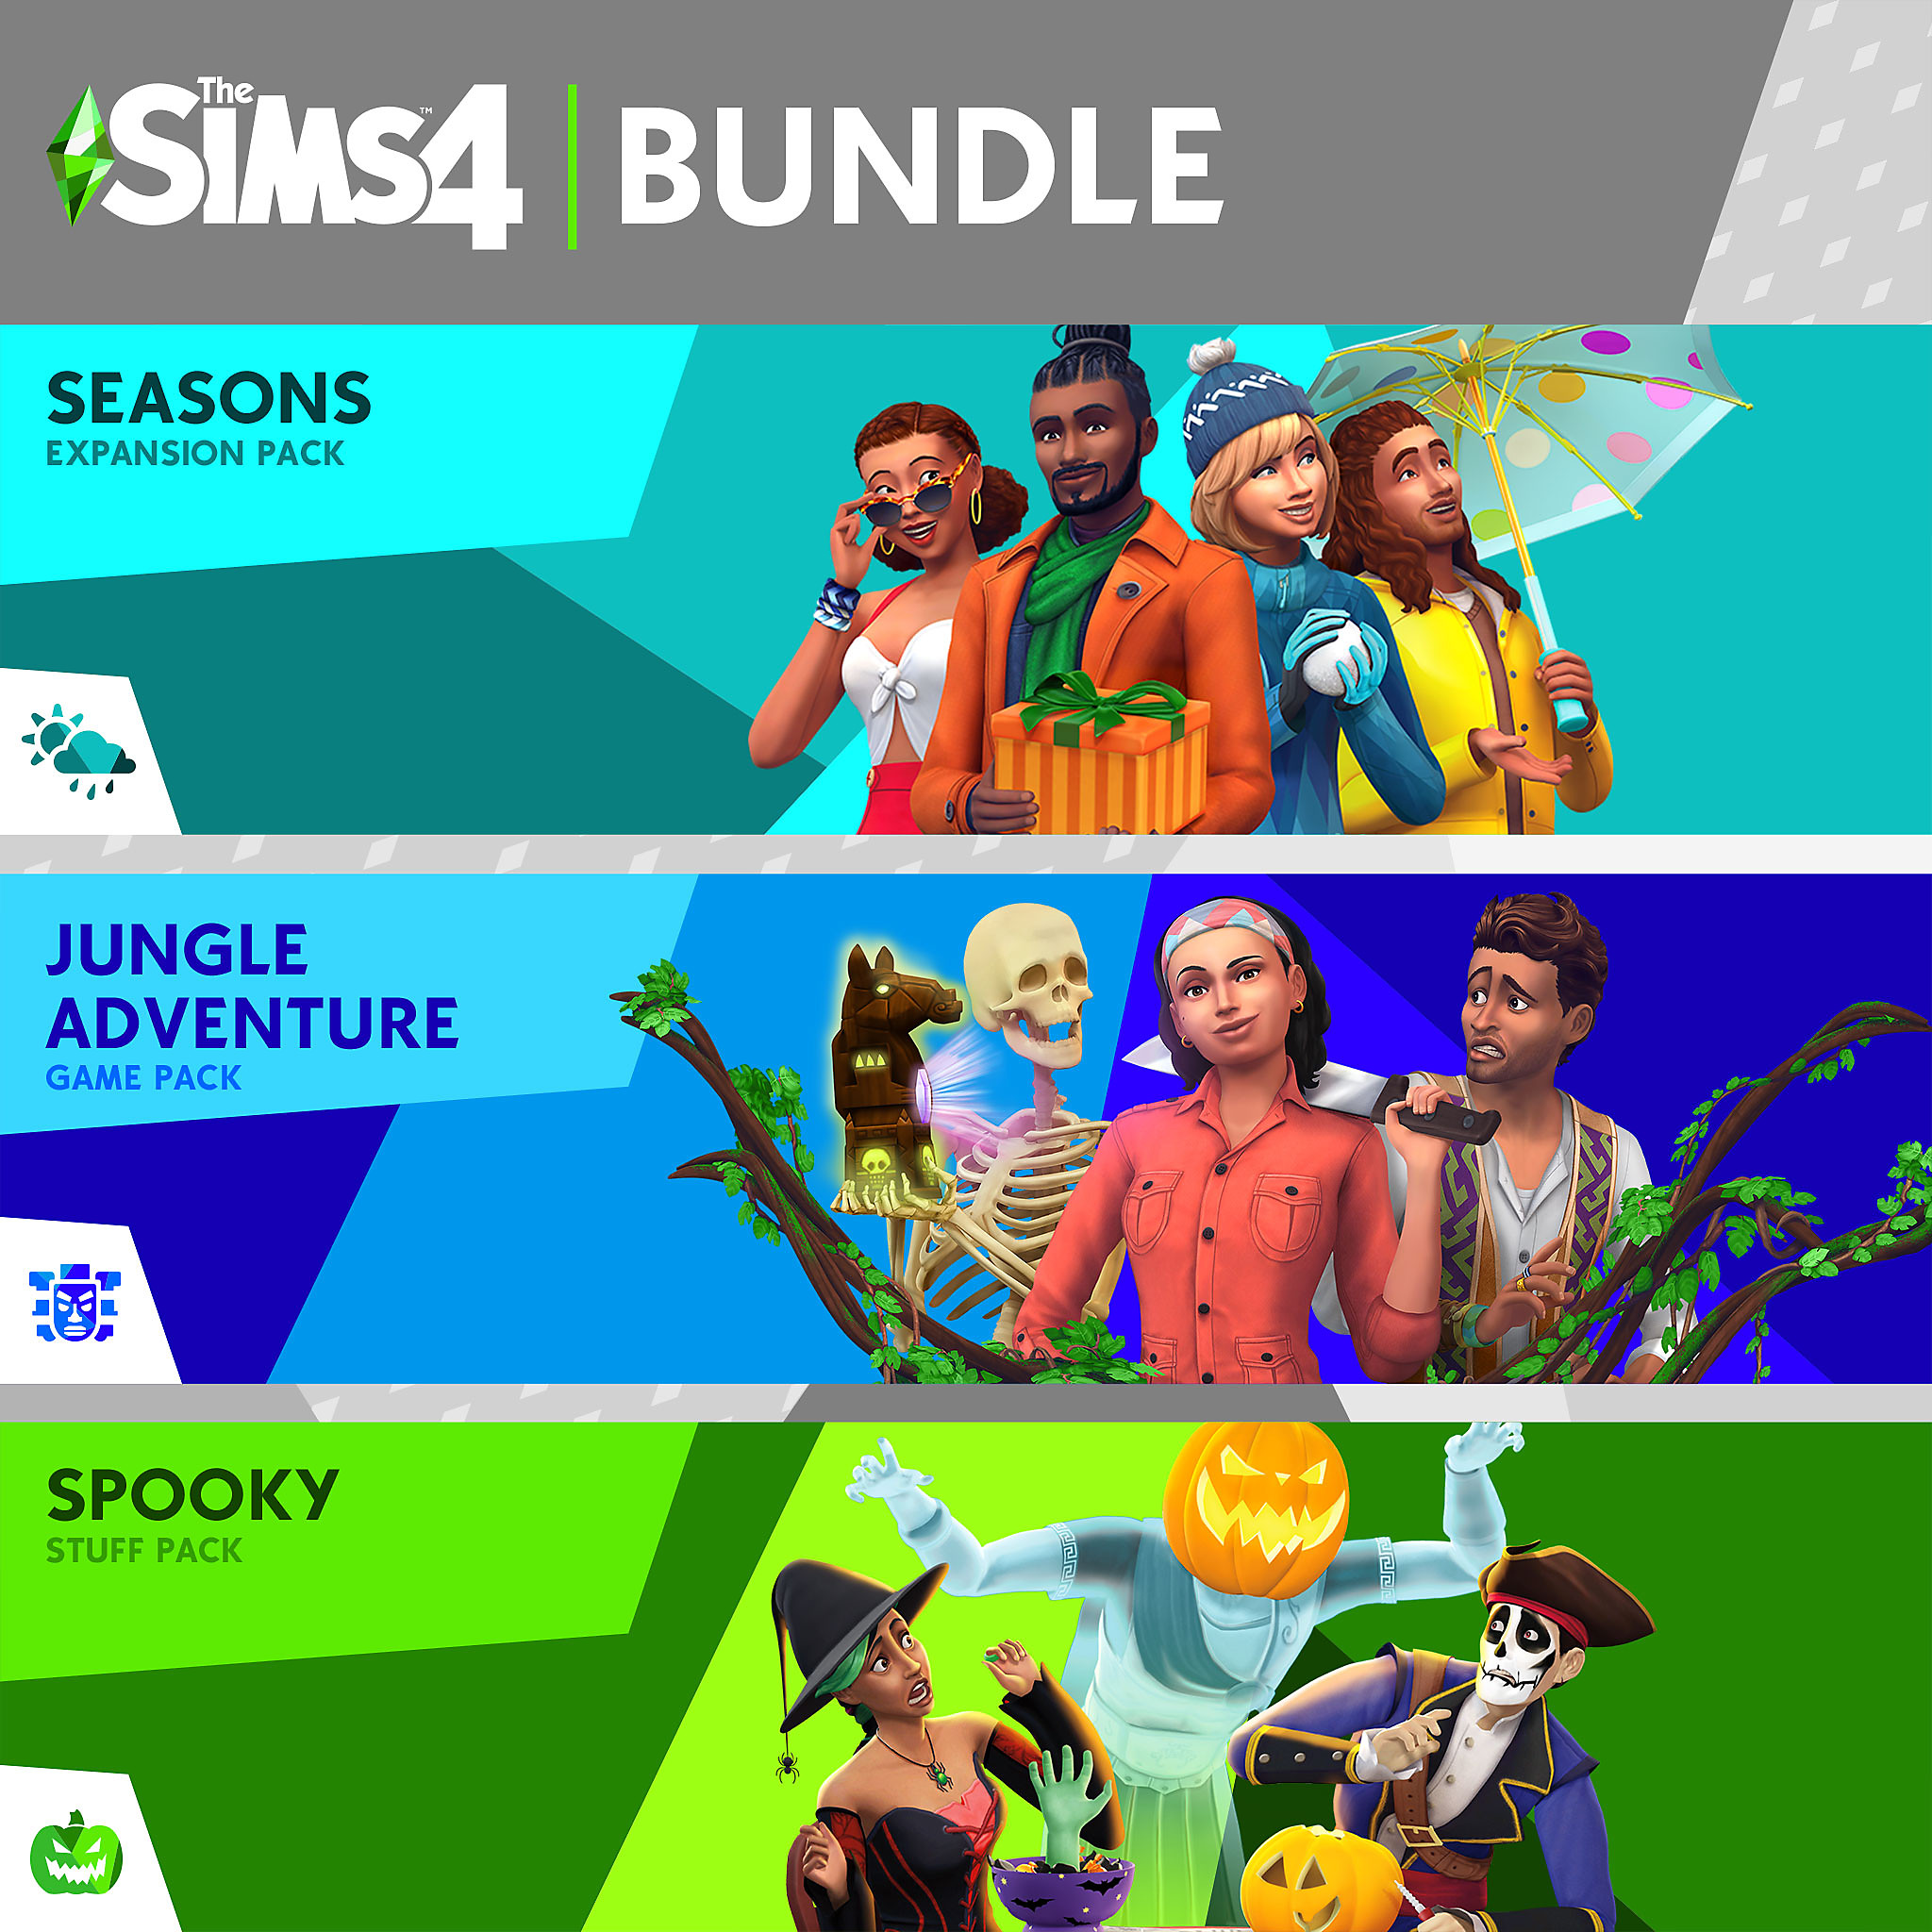 Sims 4 - Seasons, Jungle Adventure, Spooky Stuff Bundle